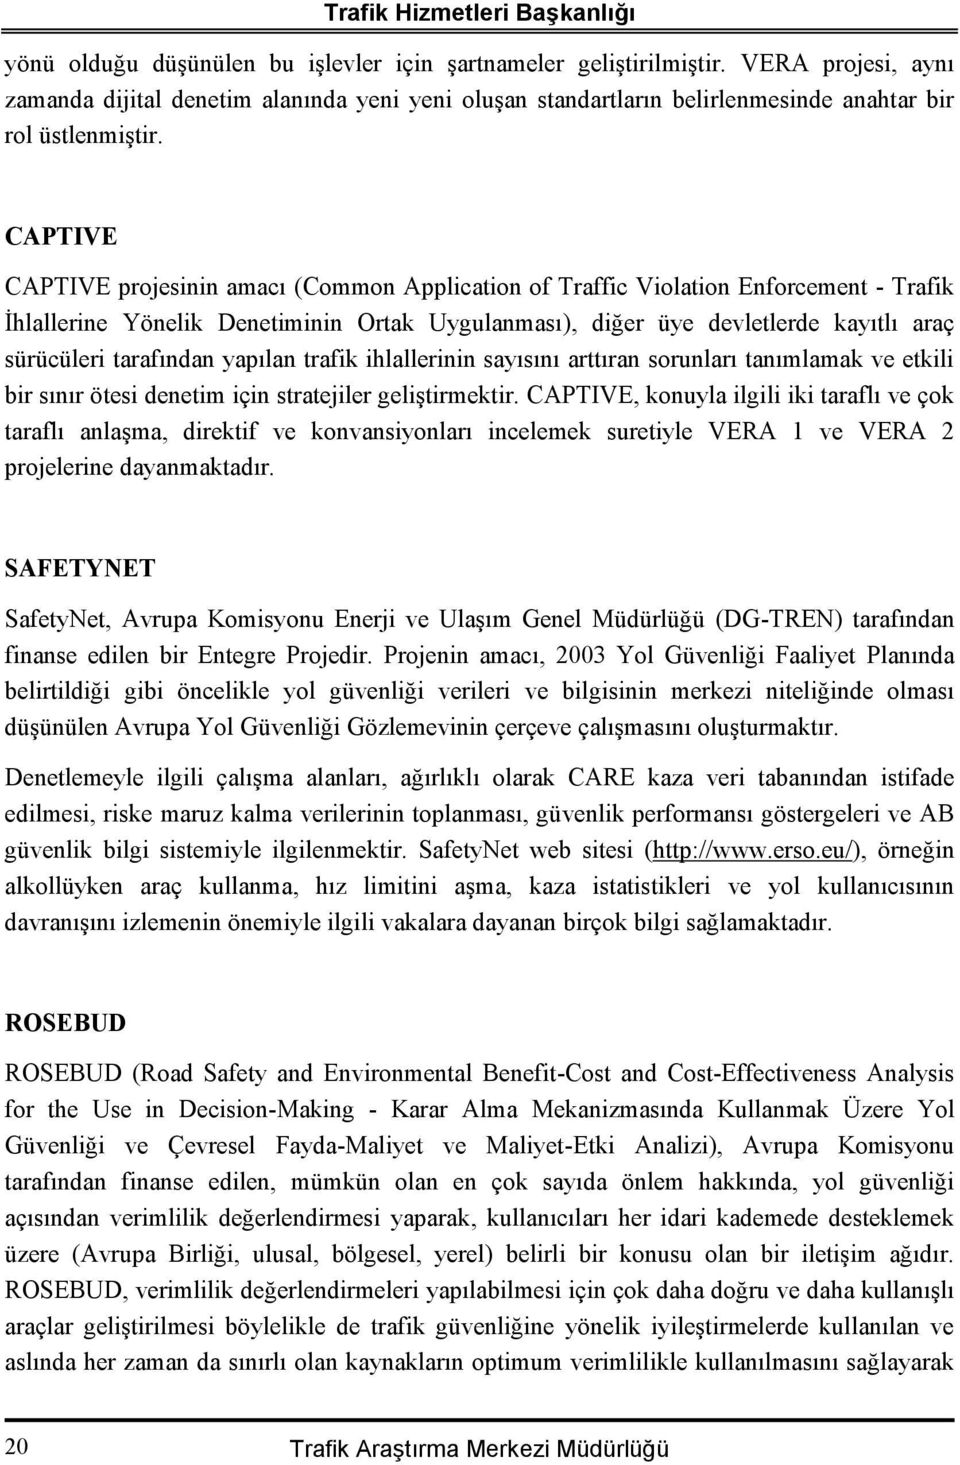 CAPTIVE CAPTIVE projesinin amacı (Common Application of Traffic Violation Enforcement - Trafik İhlallerine Yönelik Denetiminin Ortak Uygulanması), diğer üye devletlerde kayıtlı araç sürücüleri